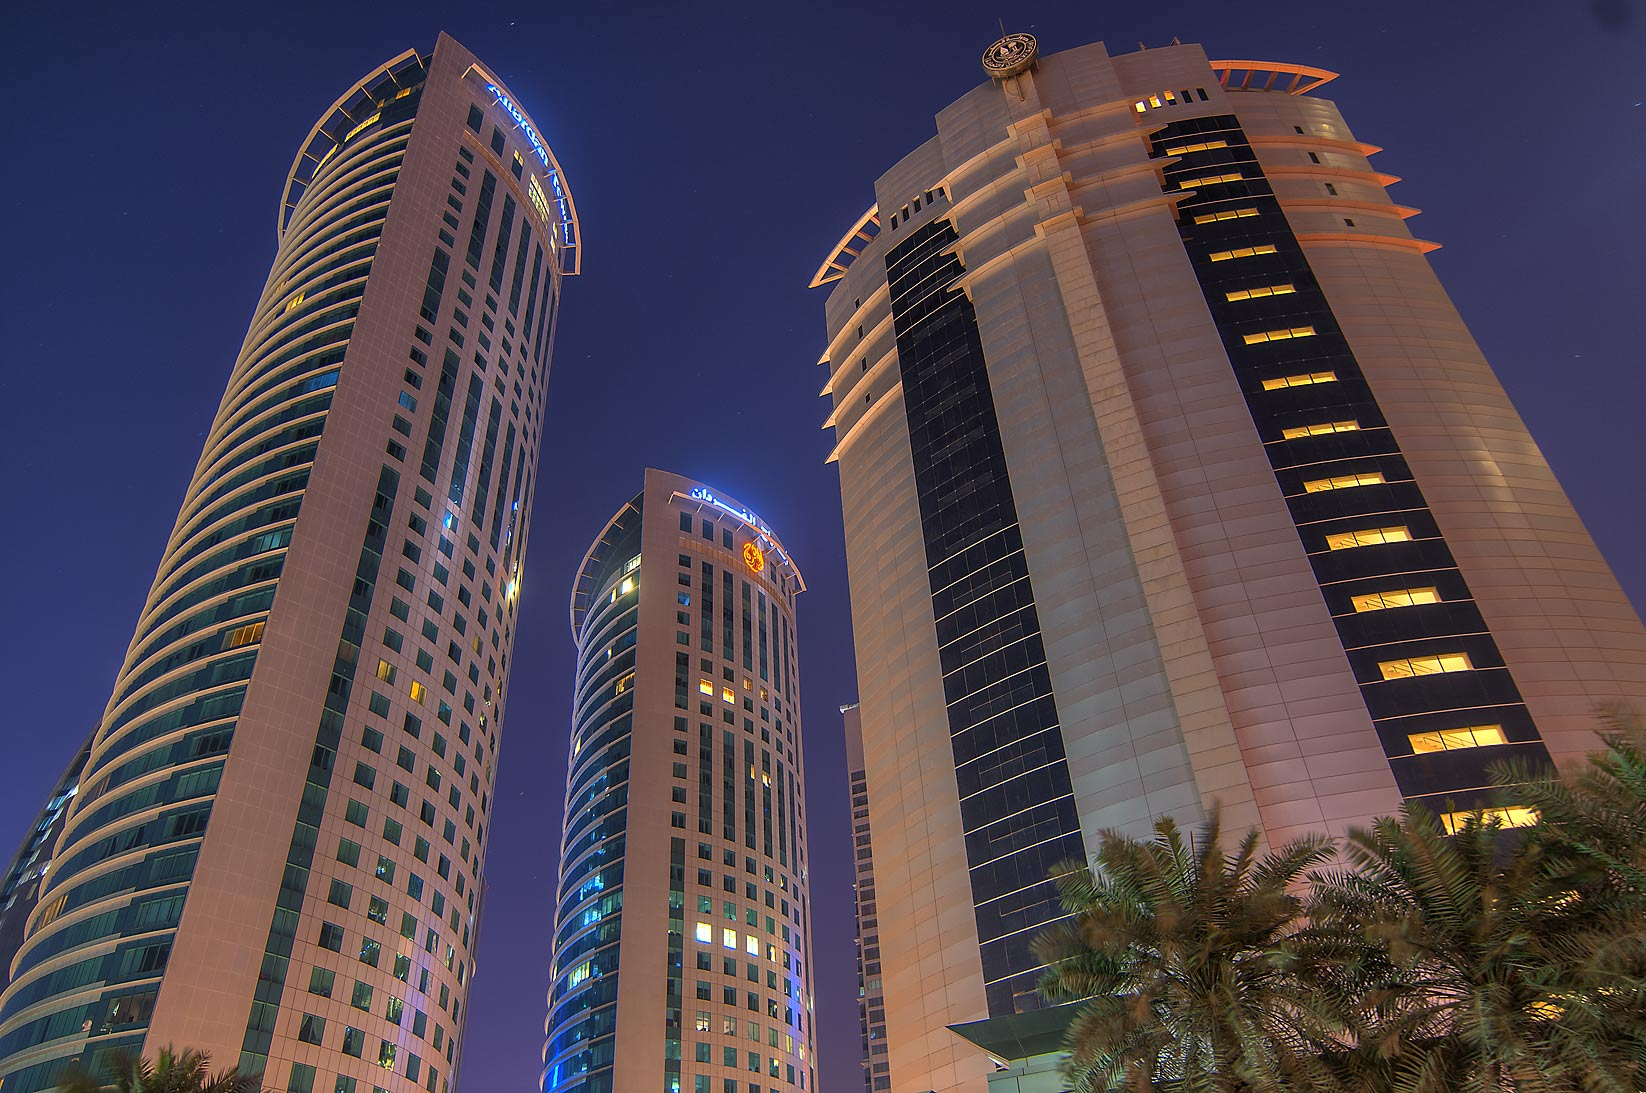 Al Fardan twin towers and Ministry of Trade in West Bay. Doha, Qatar